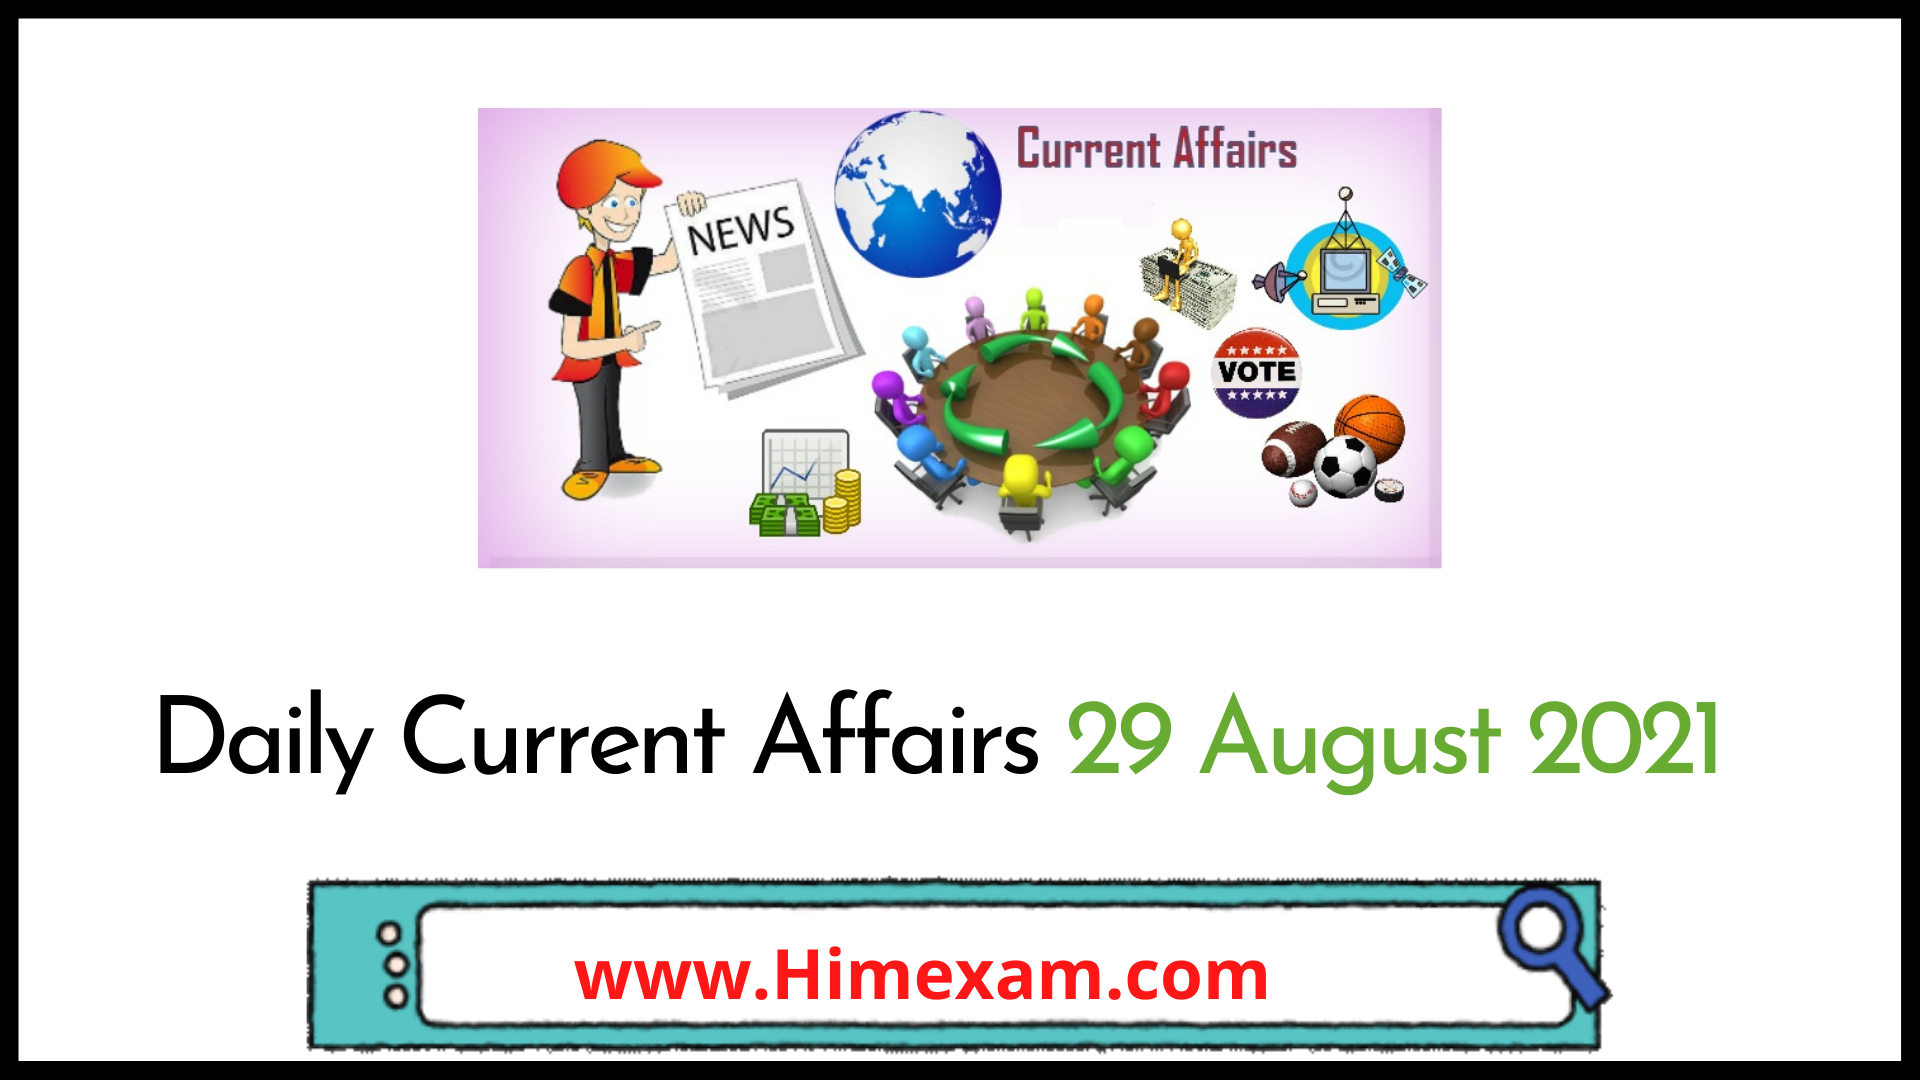 Daily Current Affairs 29 August 2021